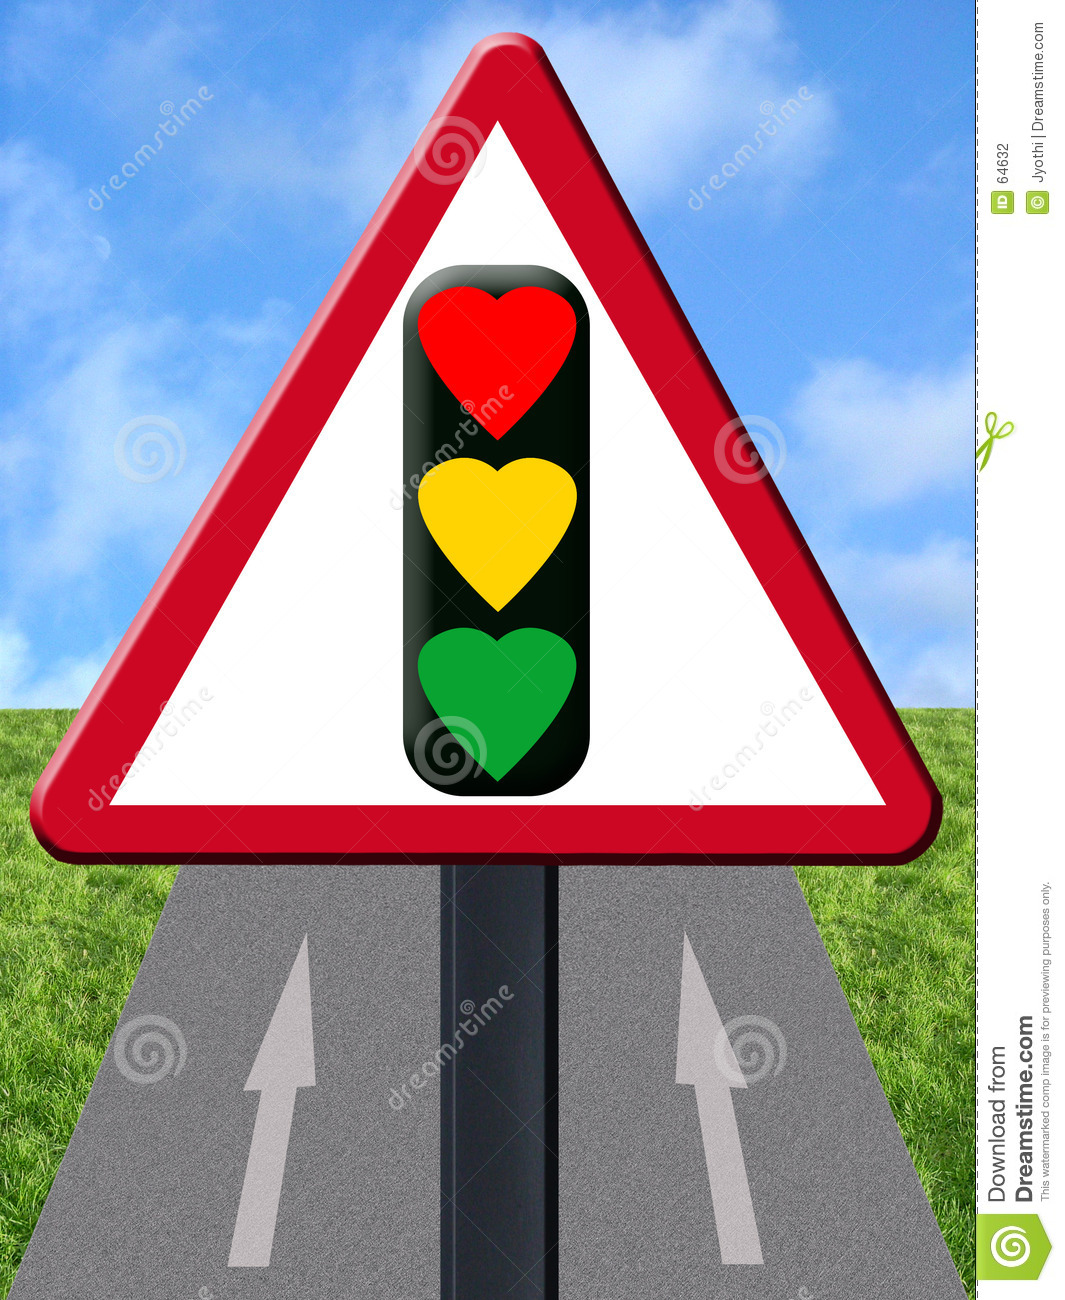 Download Signal d'amour illustration stock. Illustration du signal - 64632